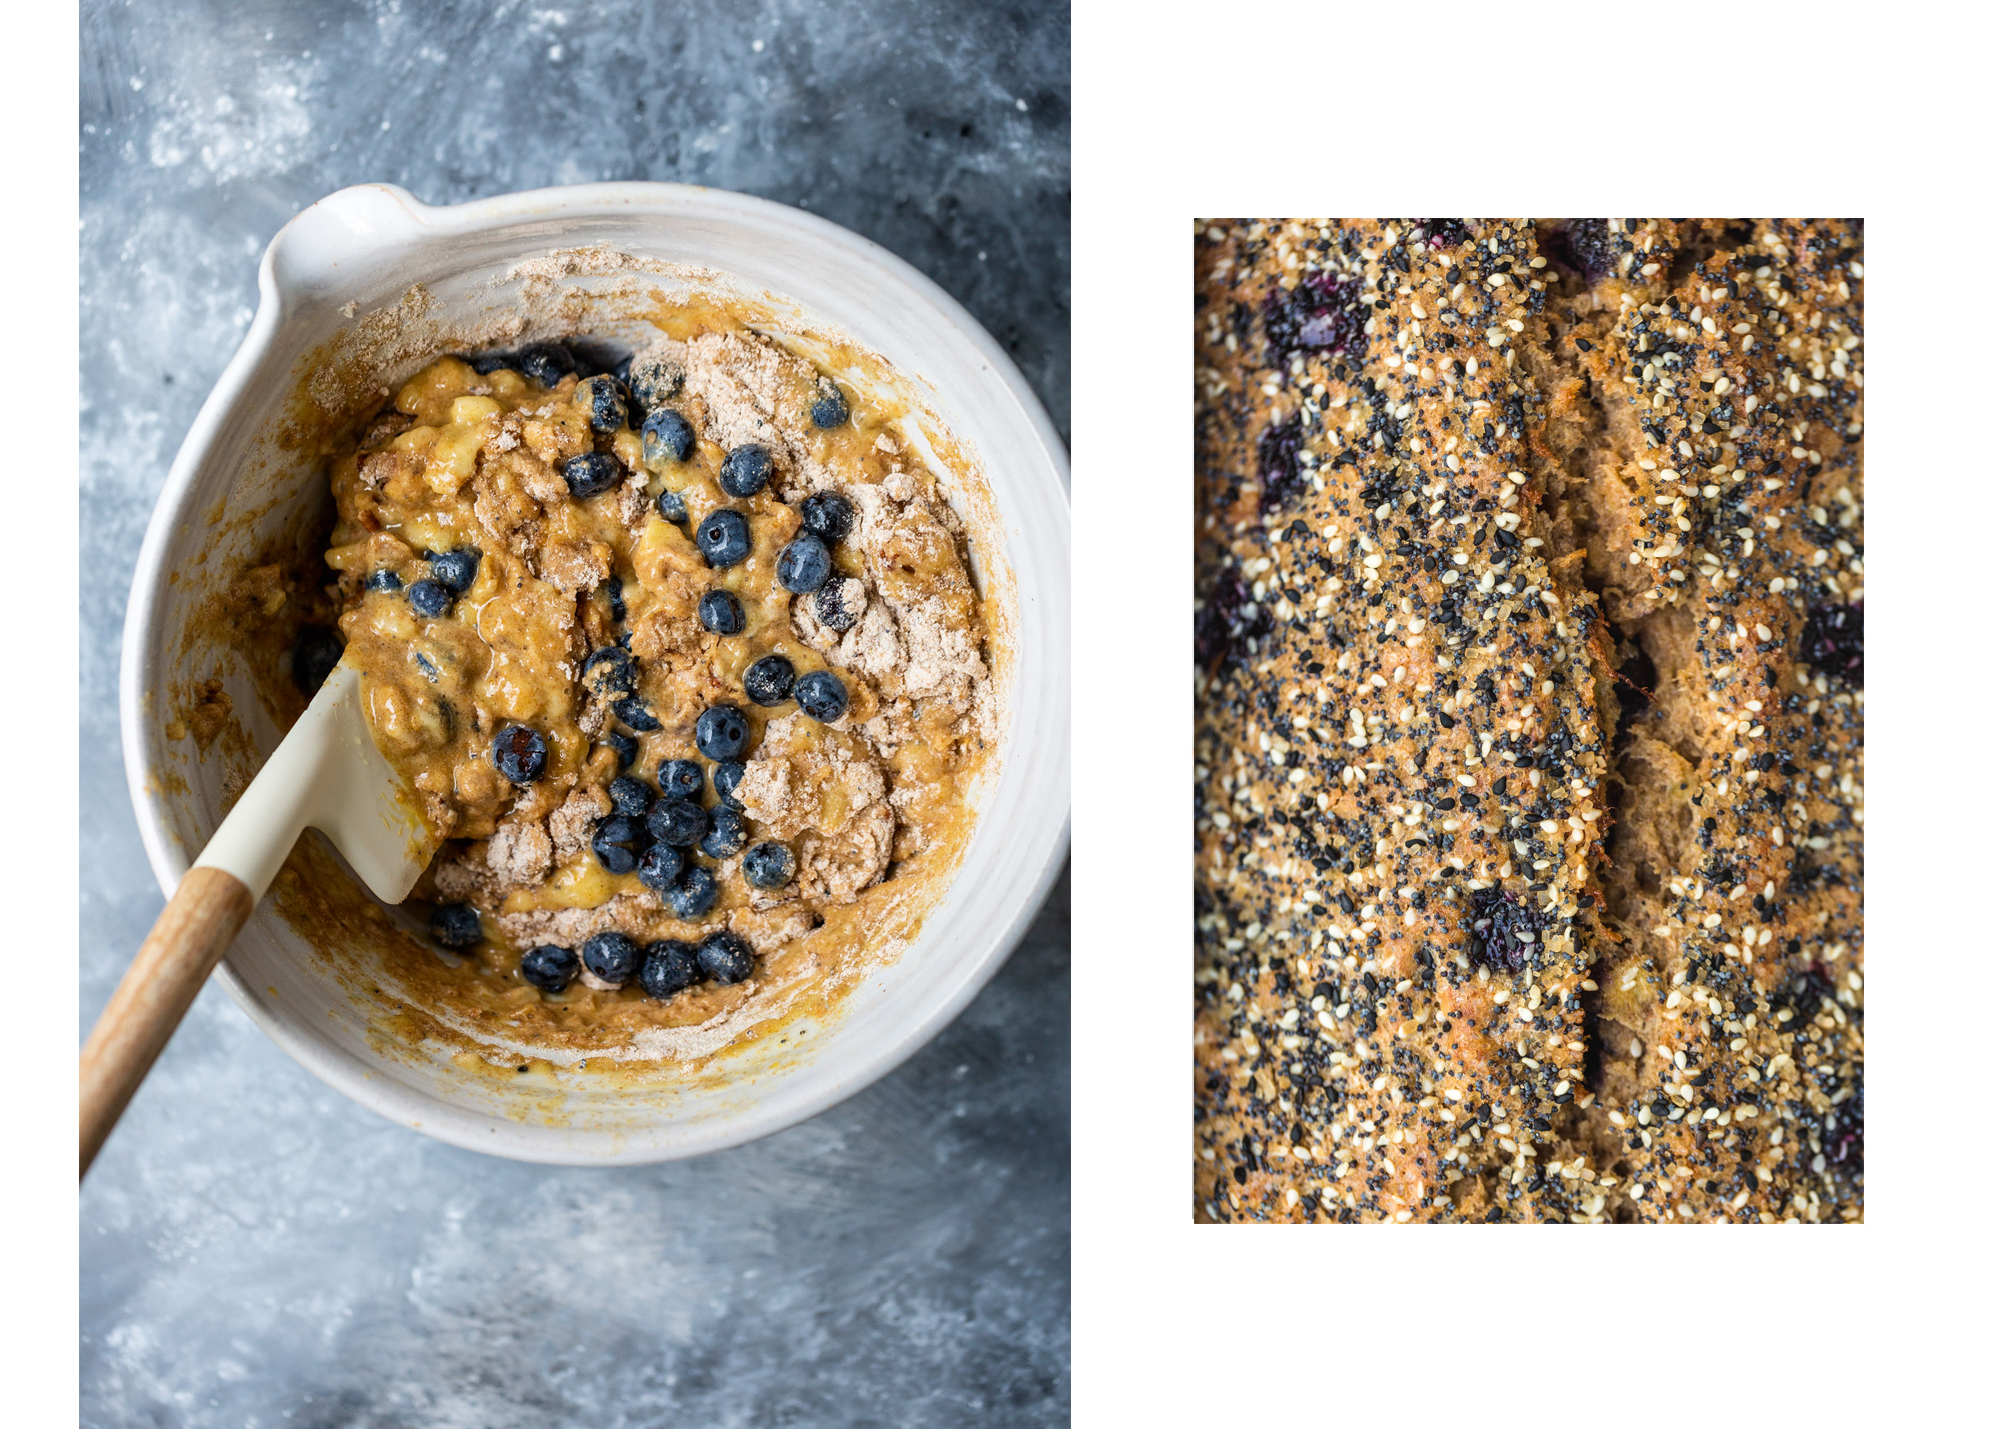 photo collage showing blueberry banana bread batter and baked loaf